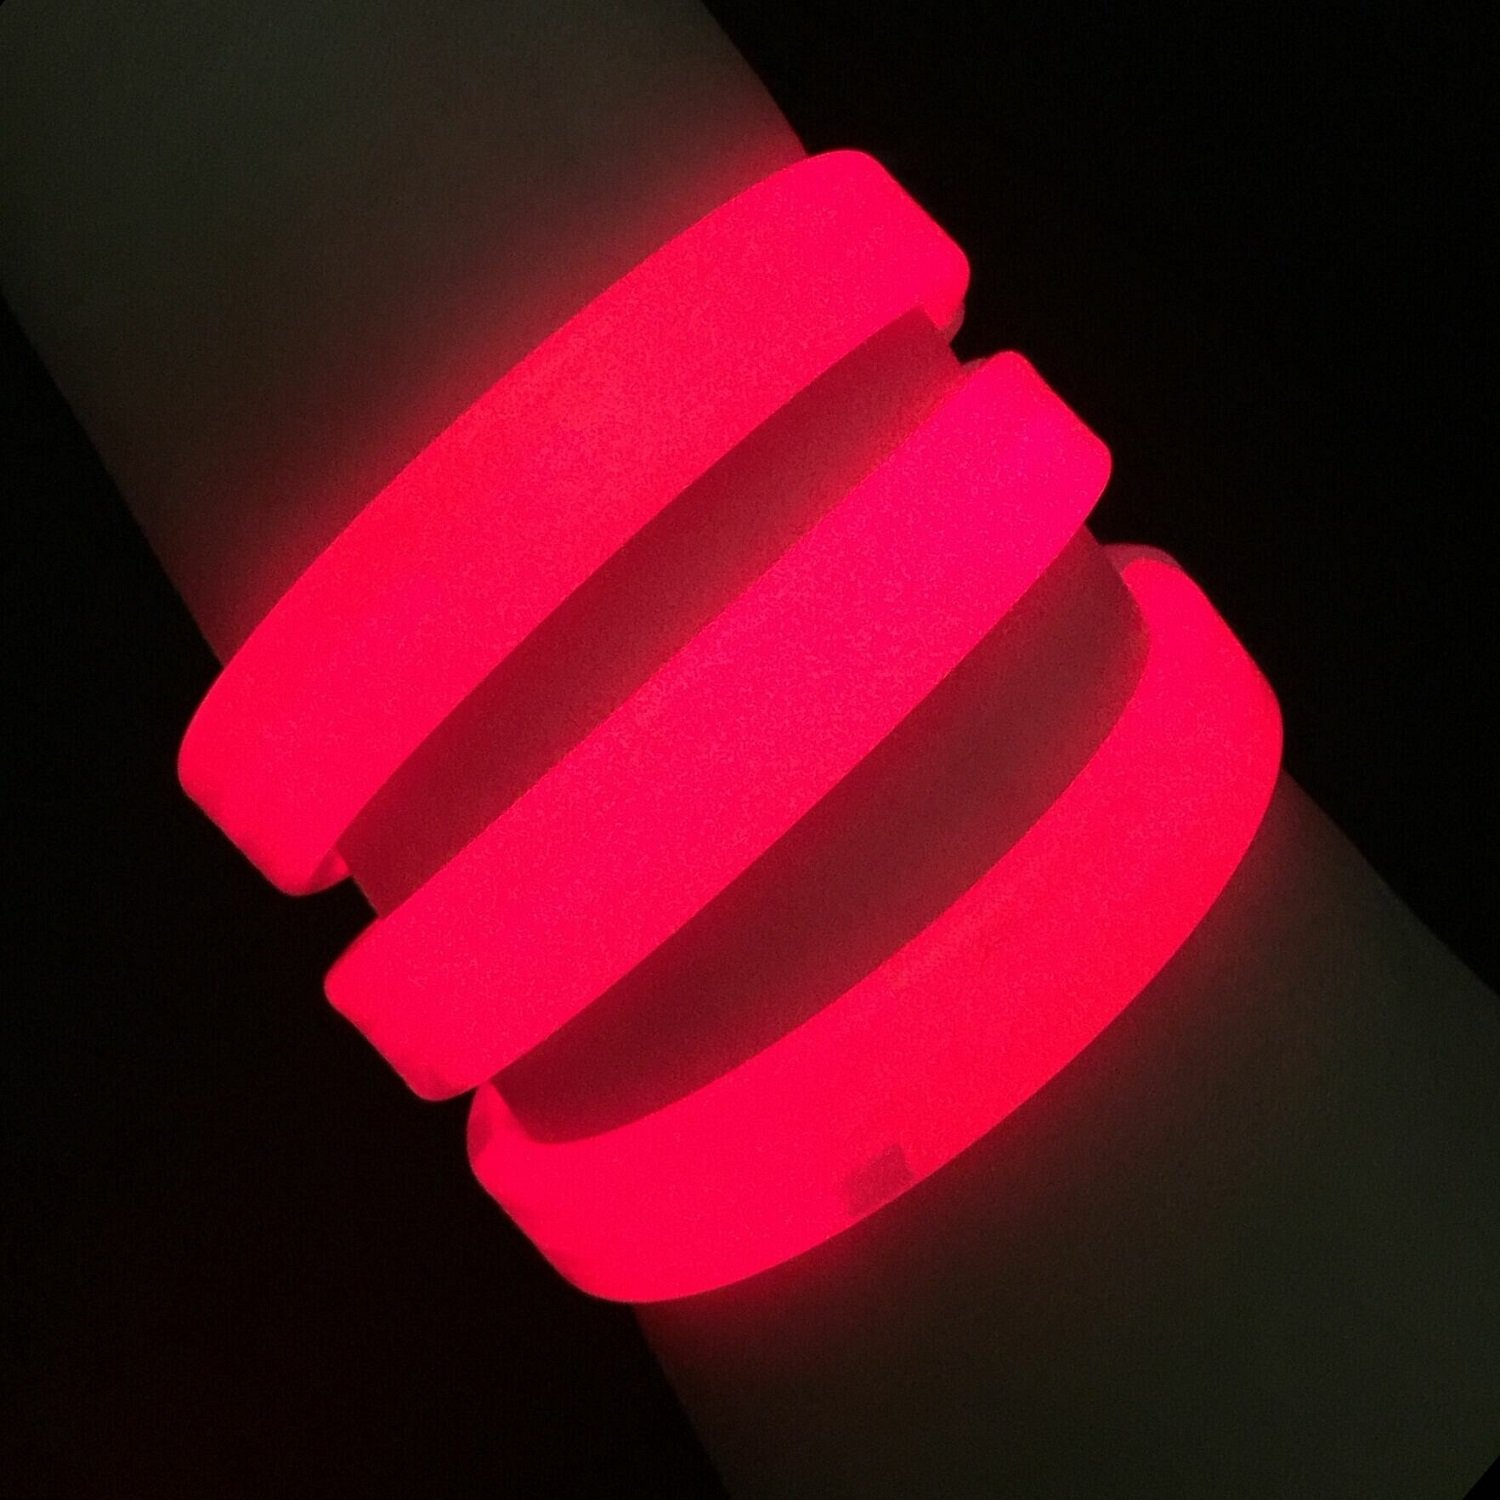 """Glow Sticks Bulk Wholesale Wristbands, 25 9"""" Red Triple-Wide Glow Bracelets, Bright Color, Glow 8-12 Hrs, 25 Connectors Included, Glow Party Favors Supplies, Sturdy Packaging, GlowWithUs Brand"""